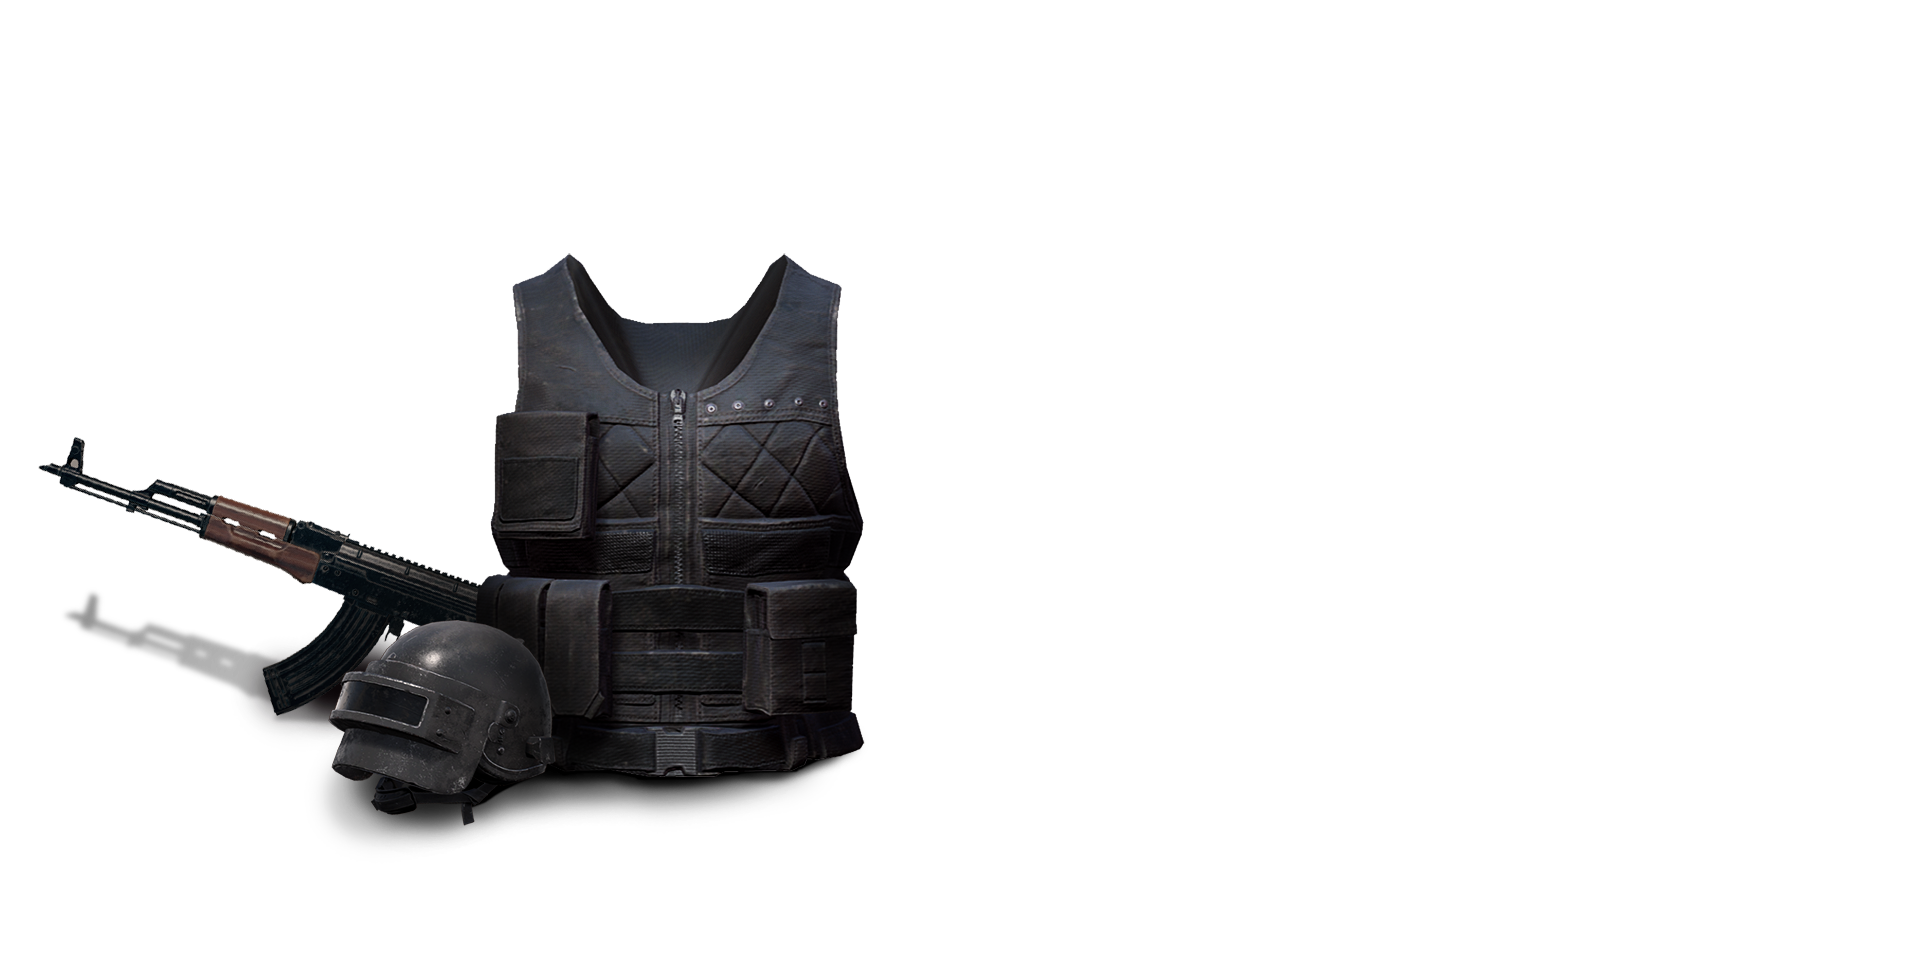 Pubg player png. Playerunknown s battlegrounds images